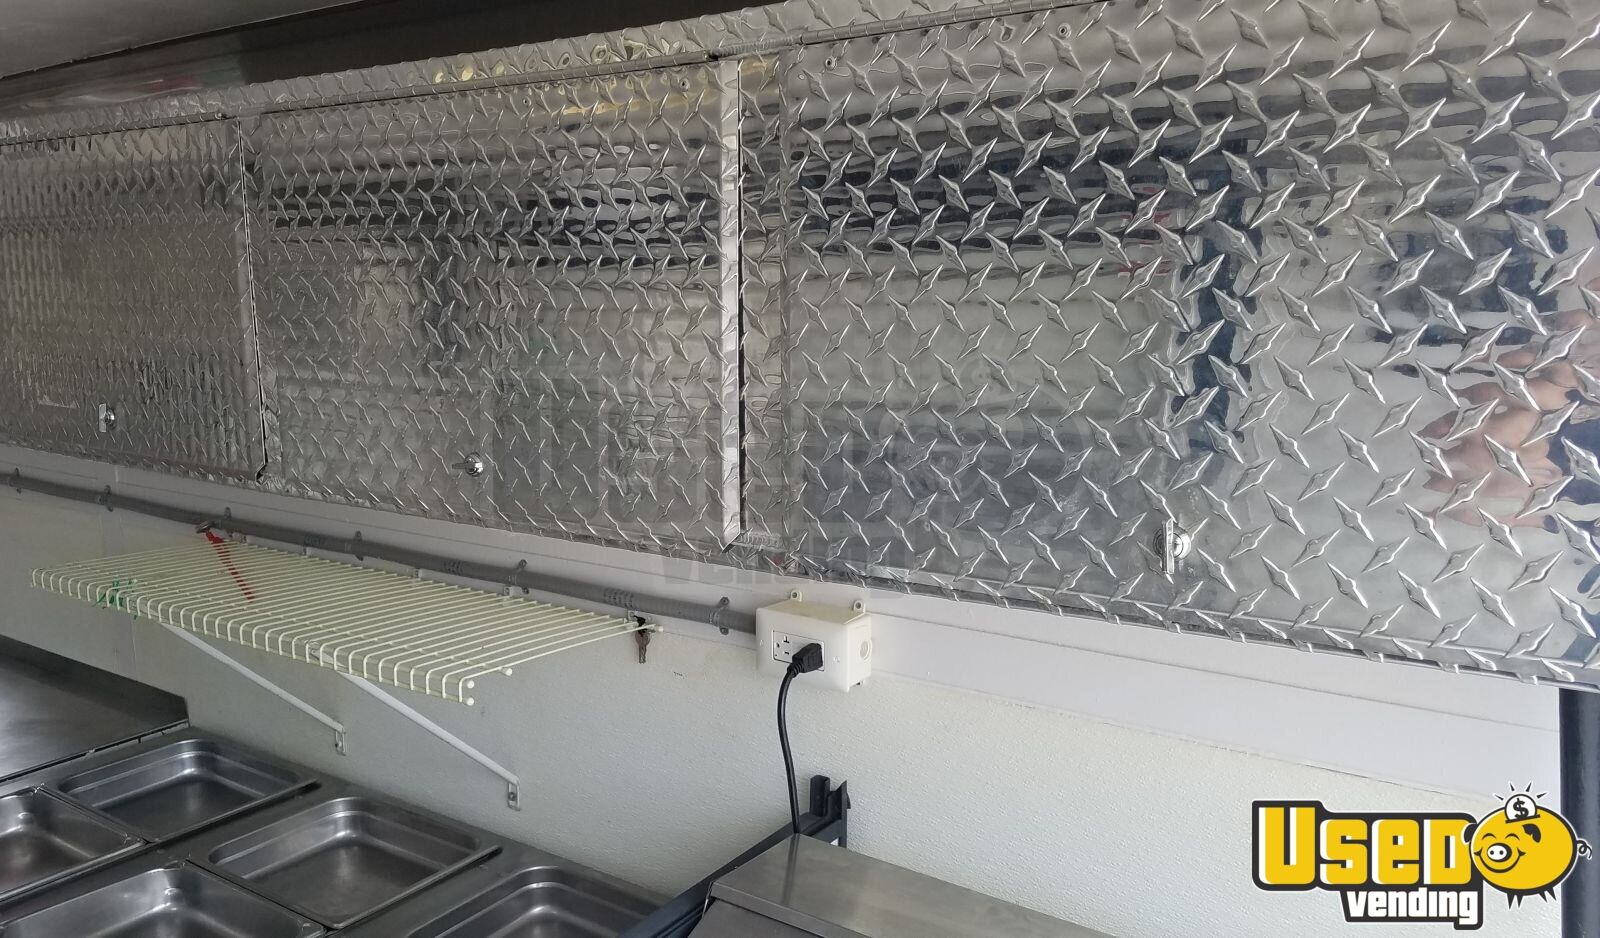 2008 Pace American Cs716ta2 All-purpose Food Trailer Interior Lighting Texas for Sale - 15